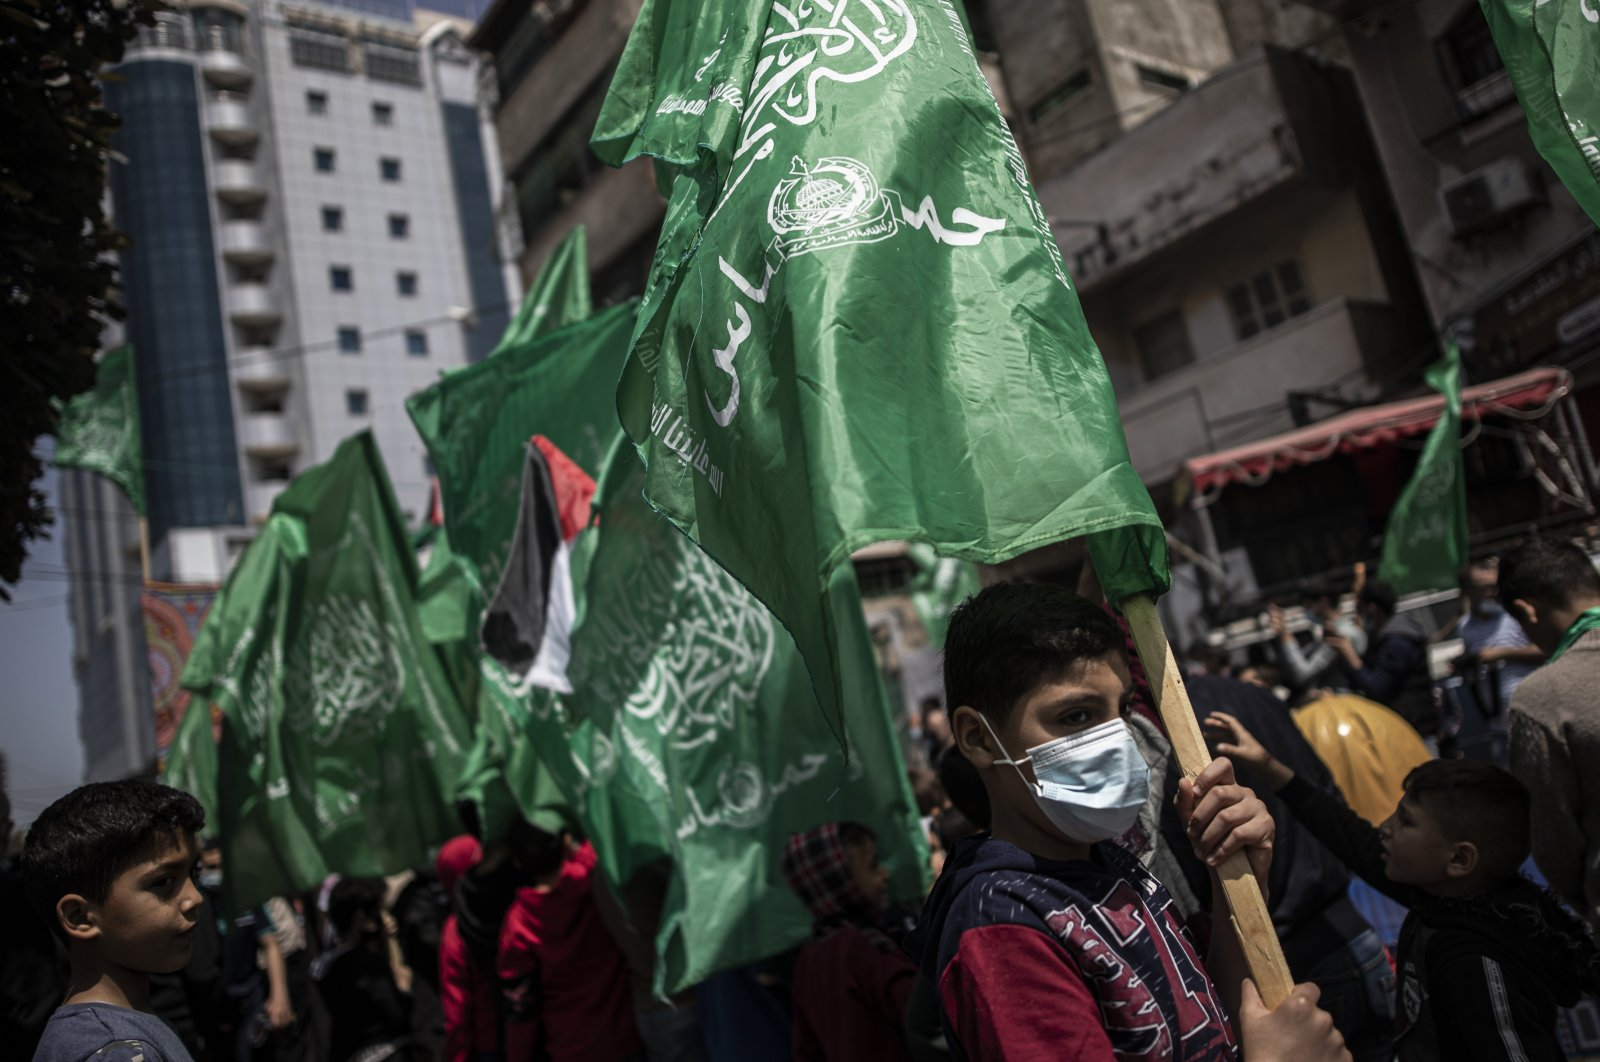 Hamas supporters hold the movement's green flags during a protest in solidarity with Palestinian demonstrators who have been clashing with Israeli police outside Jerusalem's Old City following the closure of a popular Ramadan gathering spot, in Gaza City, April 23, 2021. (AP Photo)